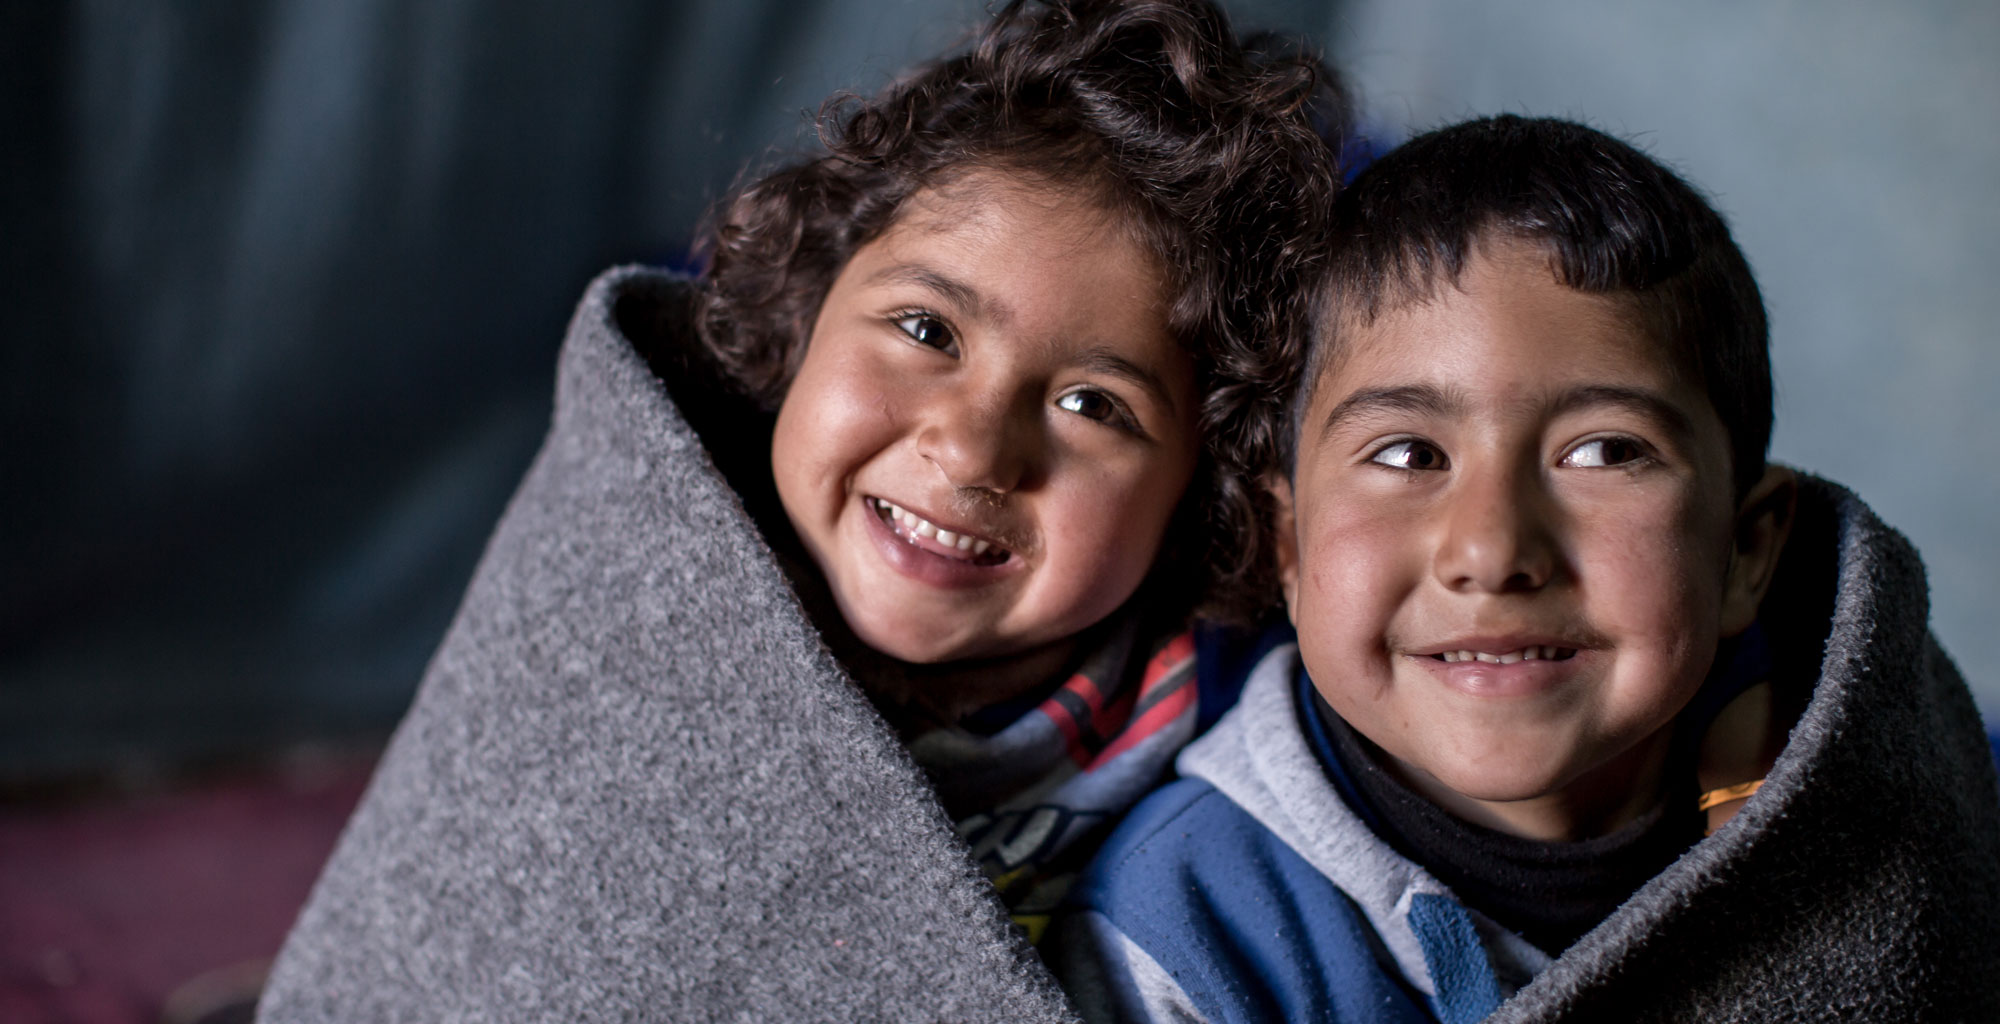 How can a blanket help Syrian children?